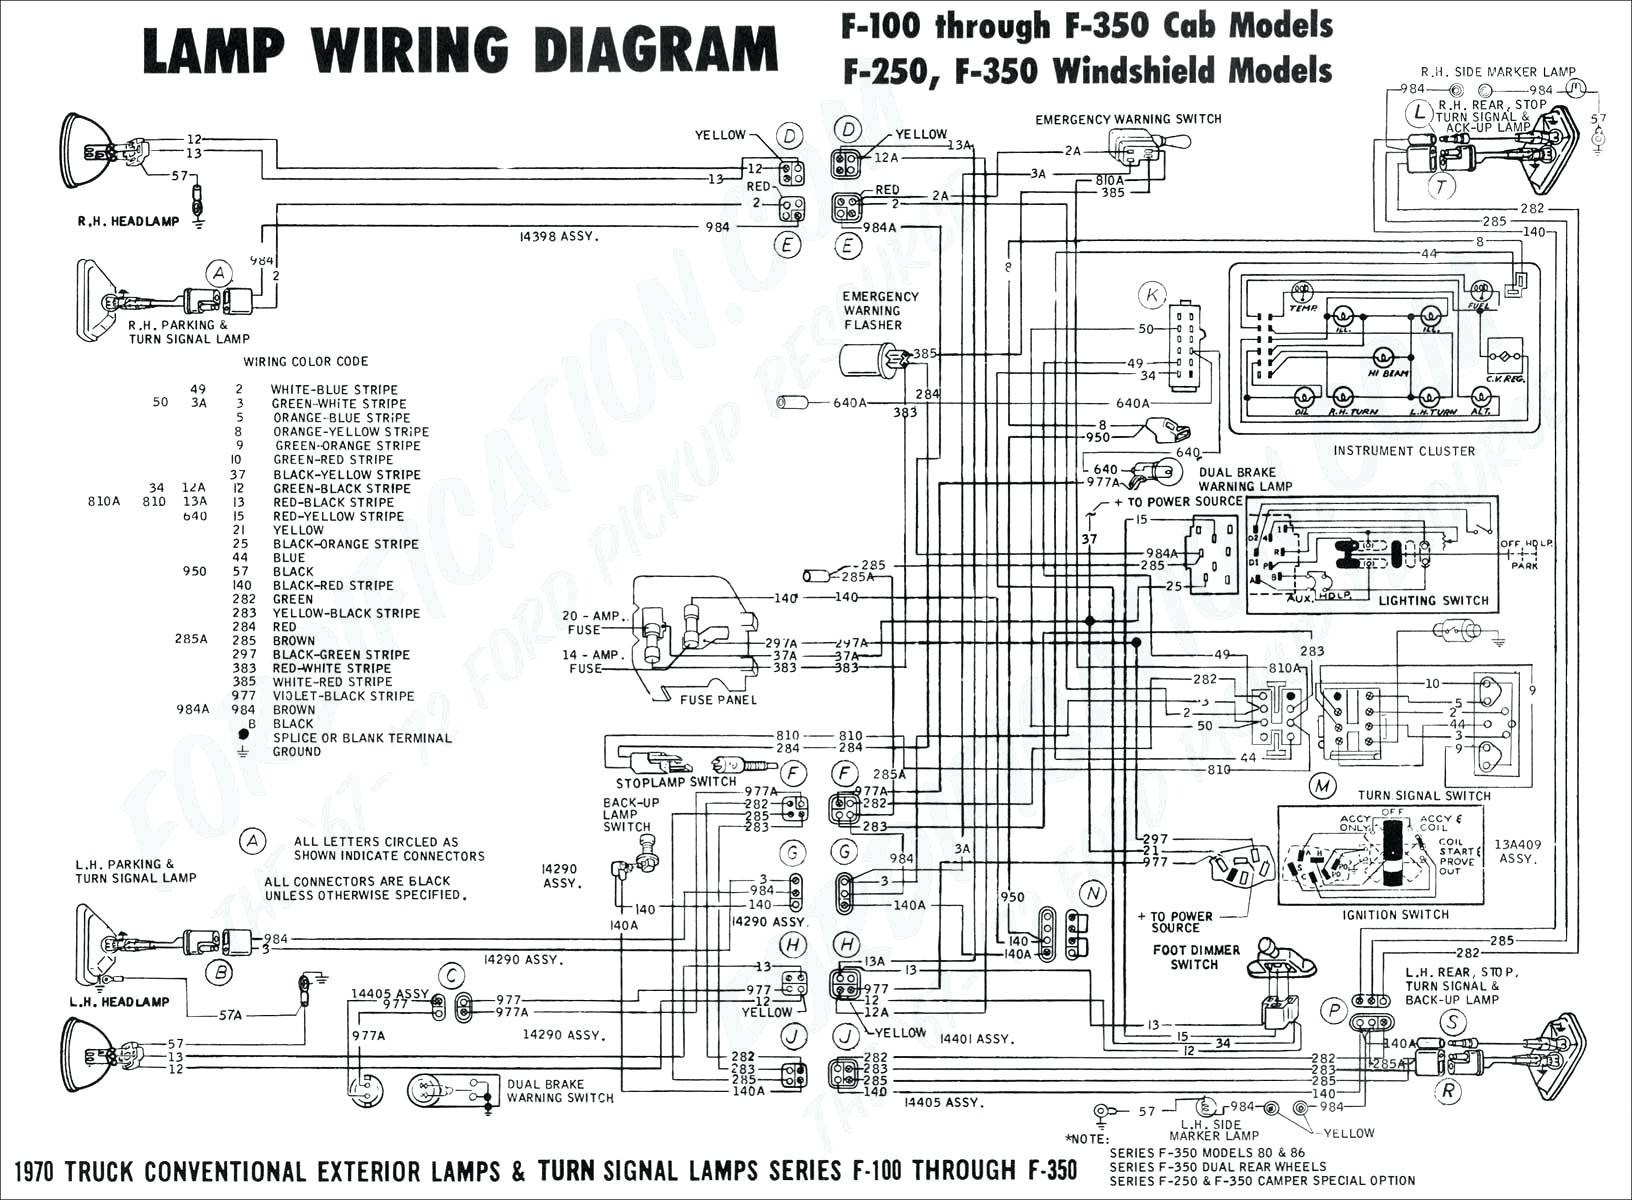 Parts Of A Trailer Hitch Diagram Wiring Diagram for Semi